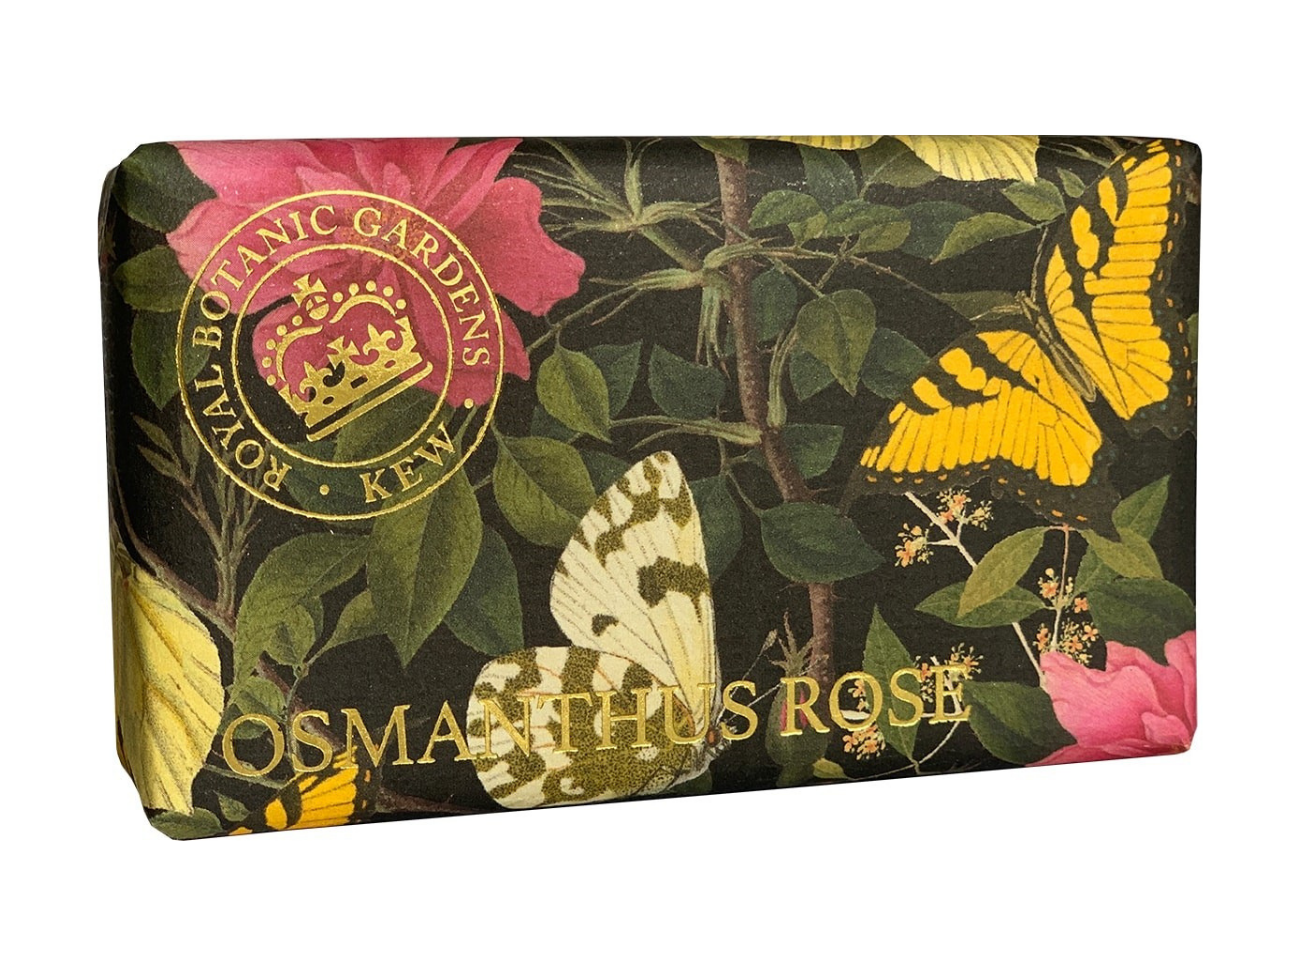 Kew Gardens Osmanthus Rose Soap